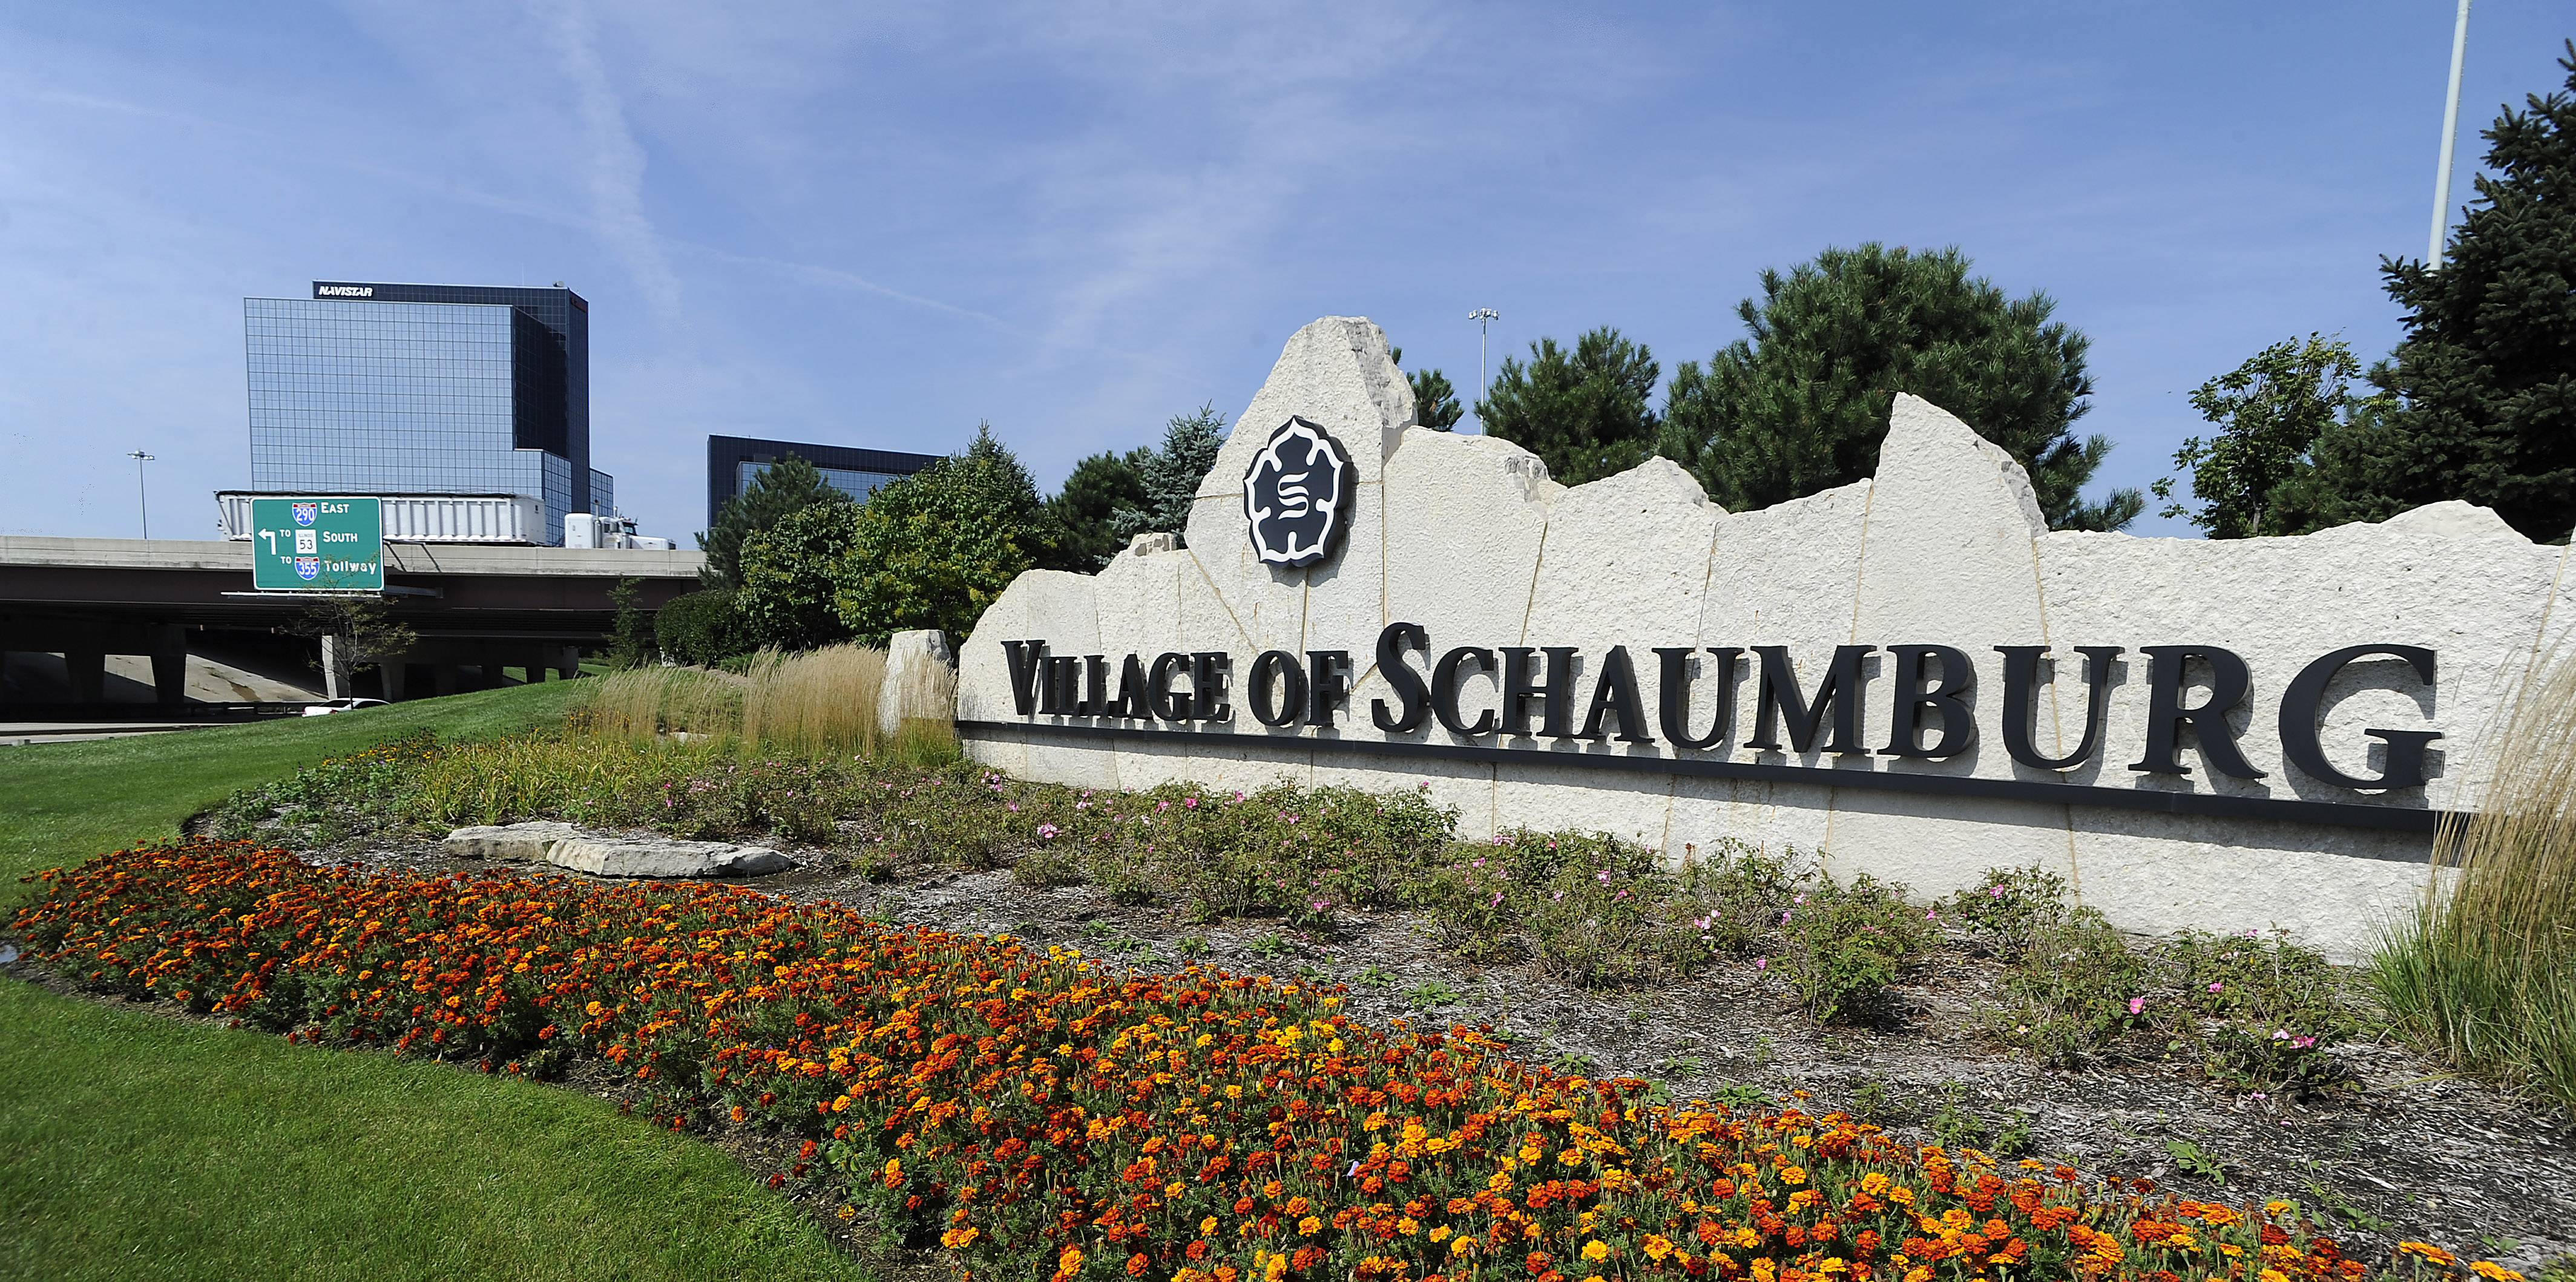 The village of Schaumburg is setting aside more money for roads in its next budget than it has in recent years.